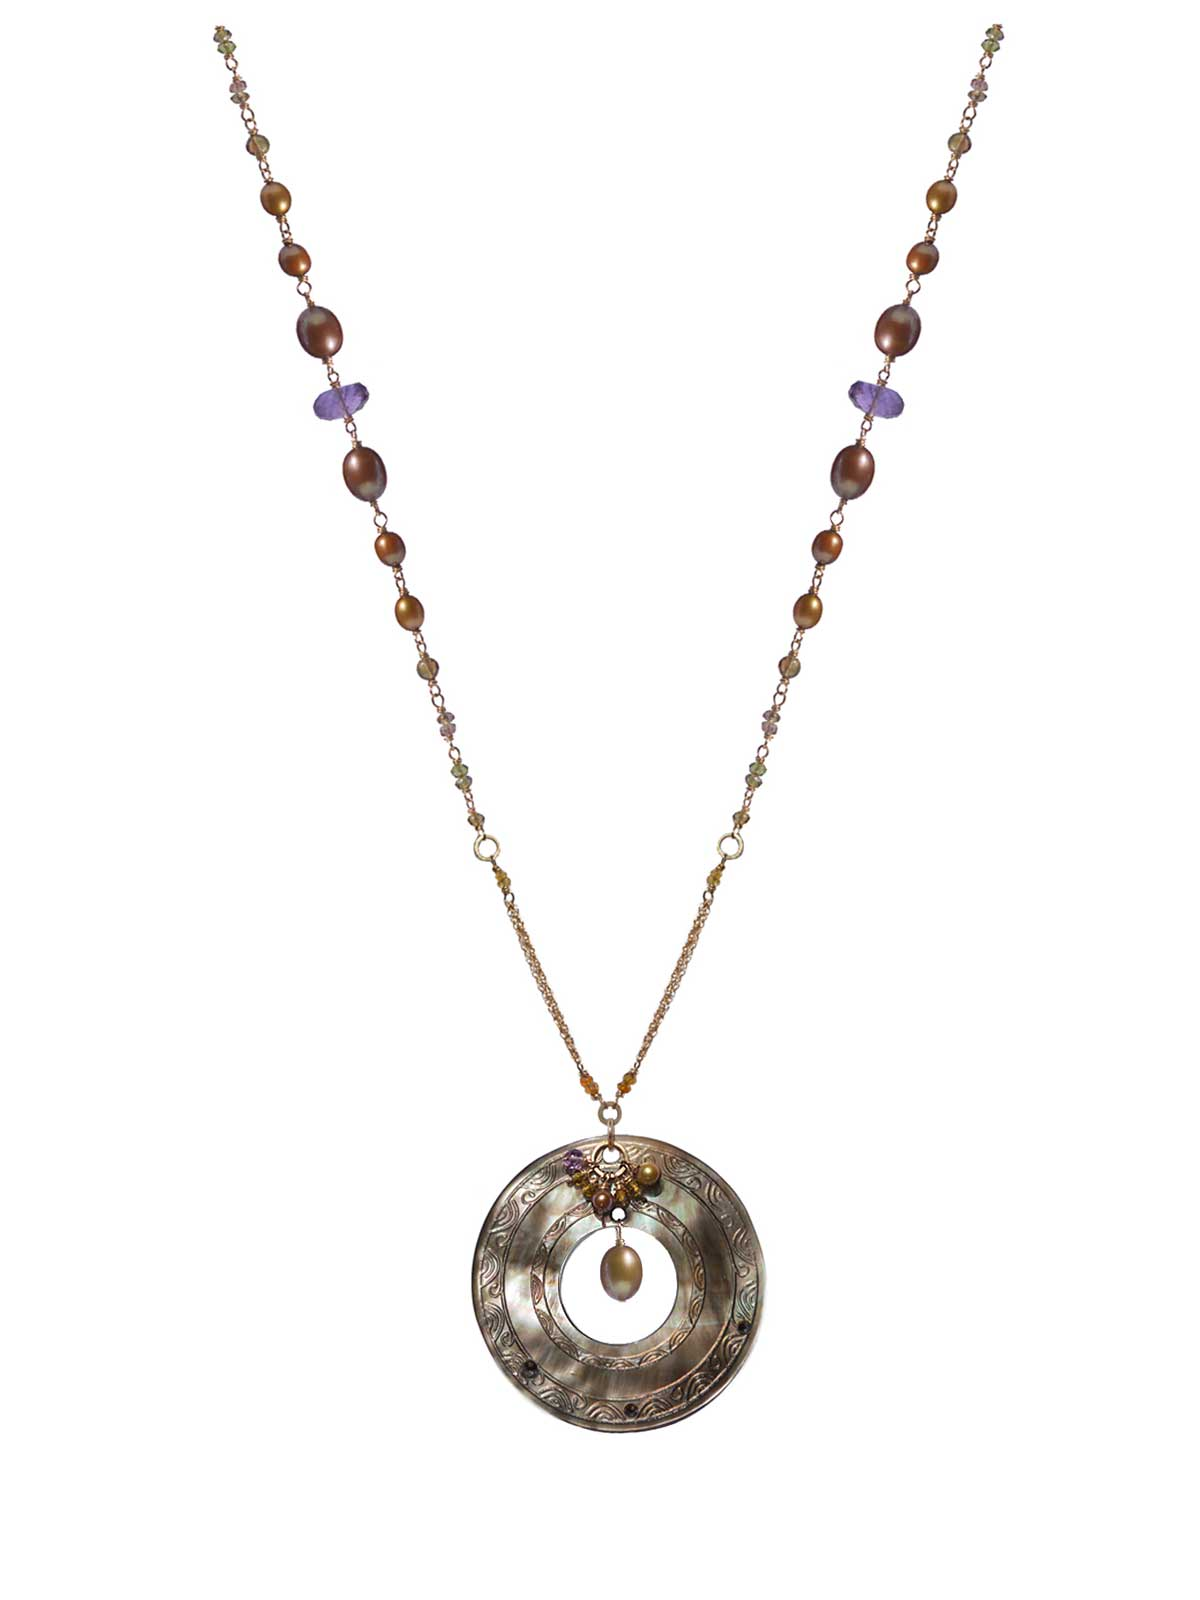 Long Necklace in 14K Gold-filled Amethyst Tourmaline Freshwater Pearls